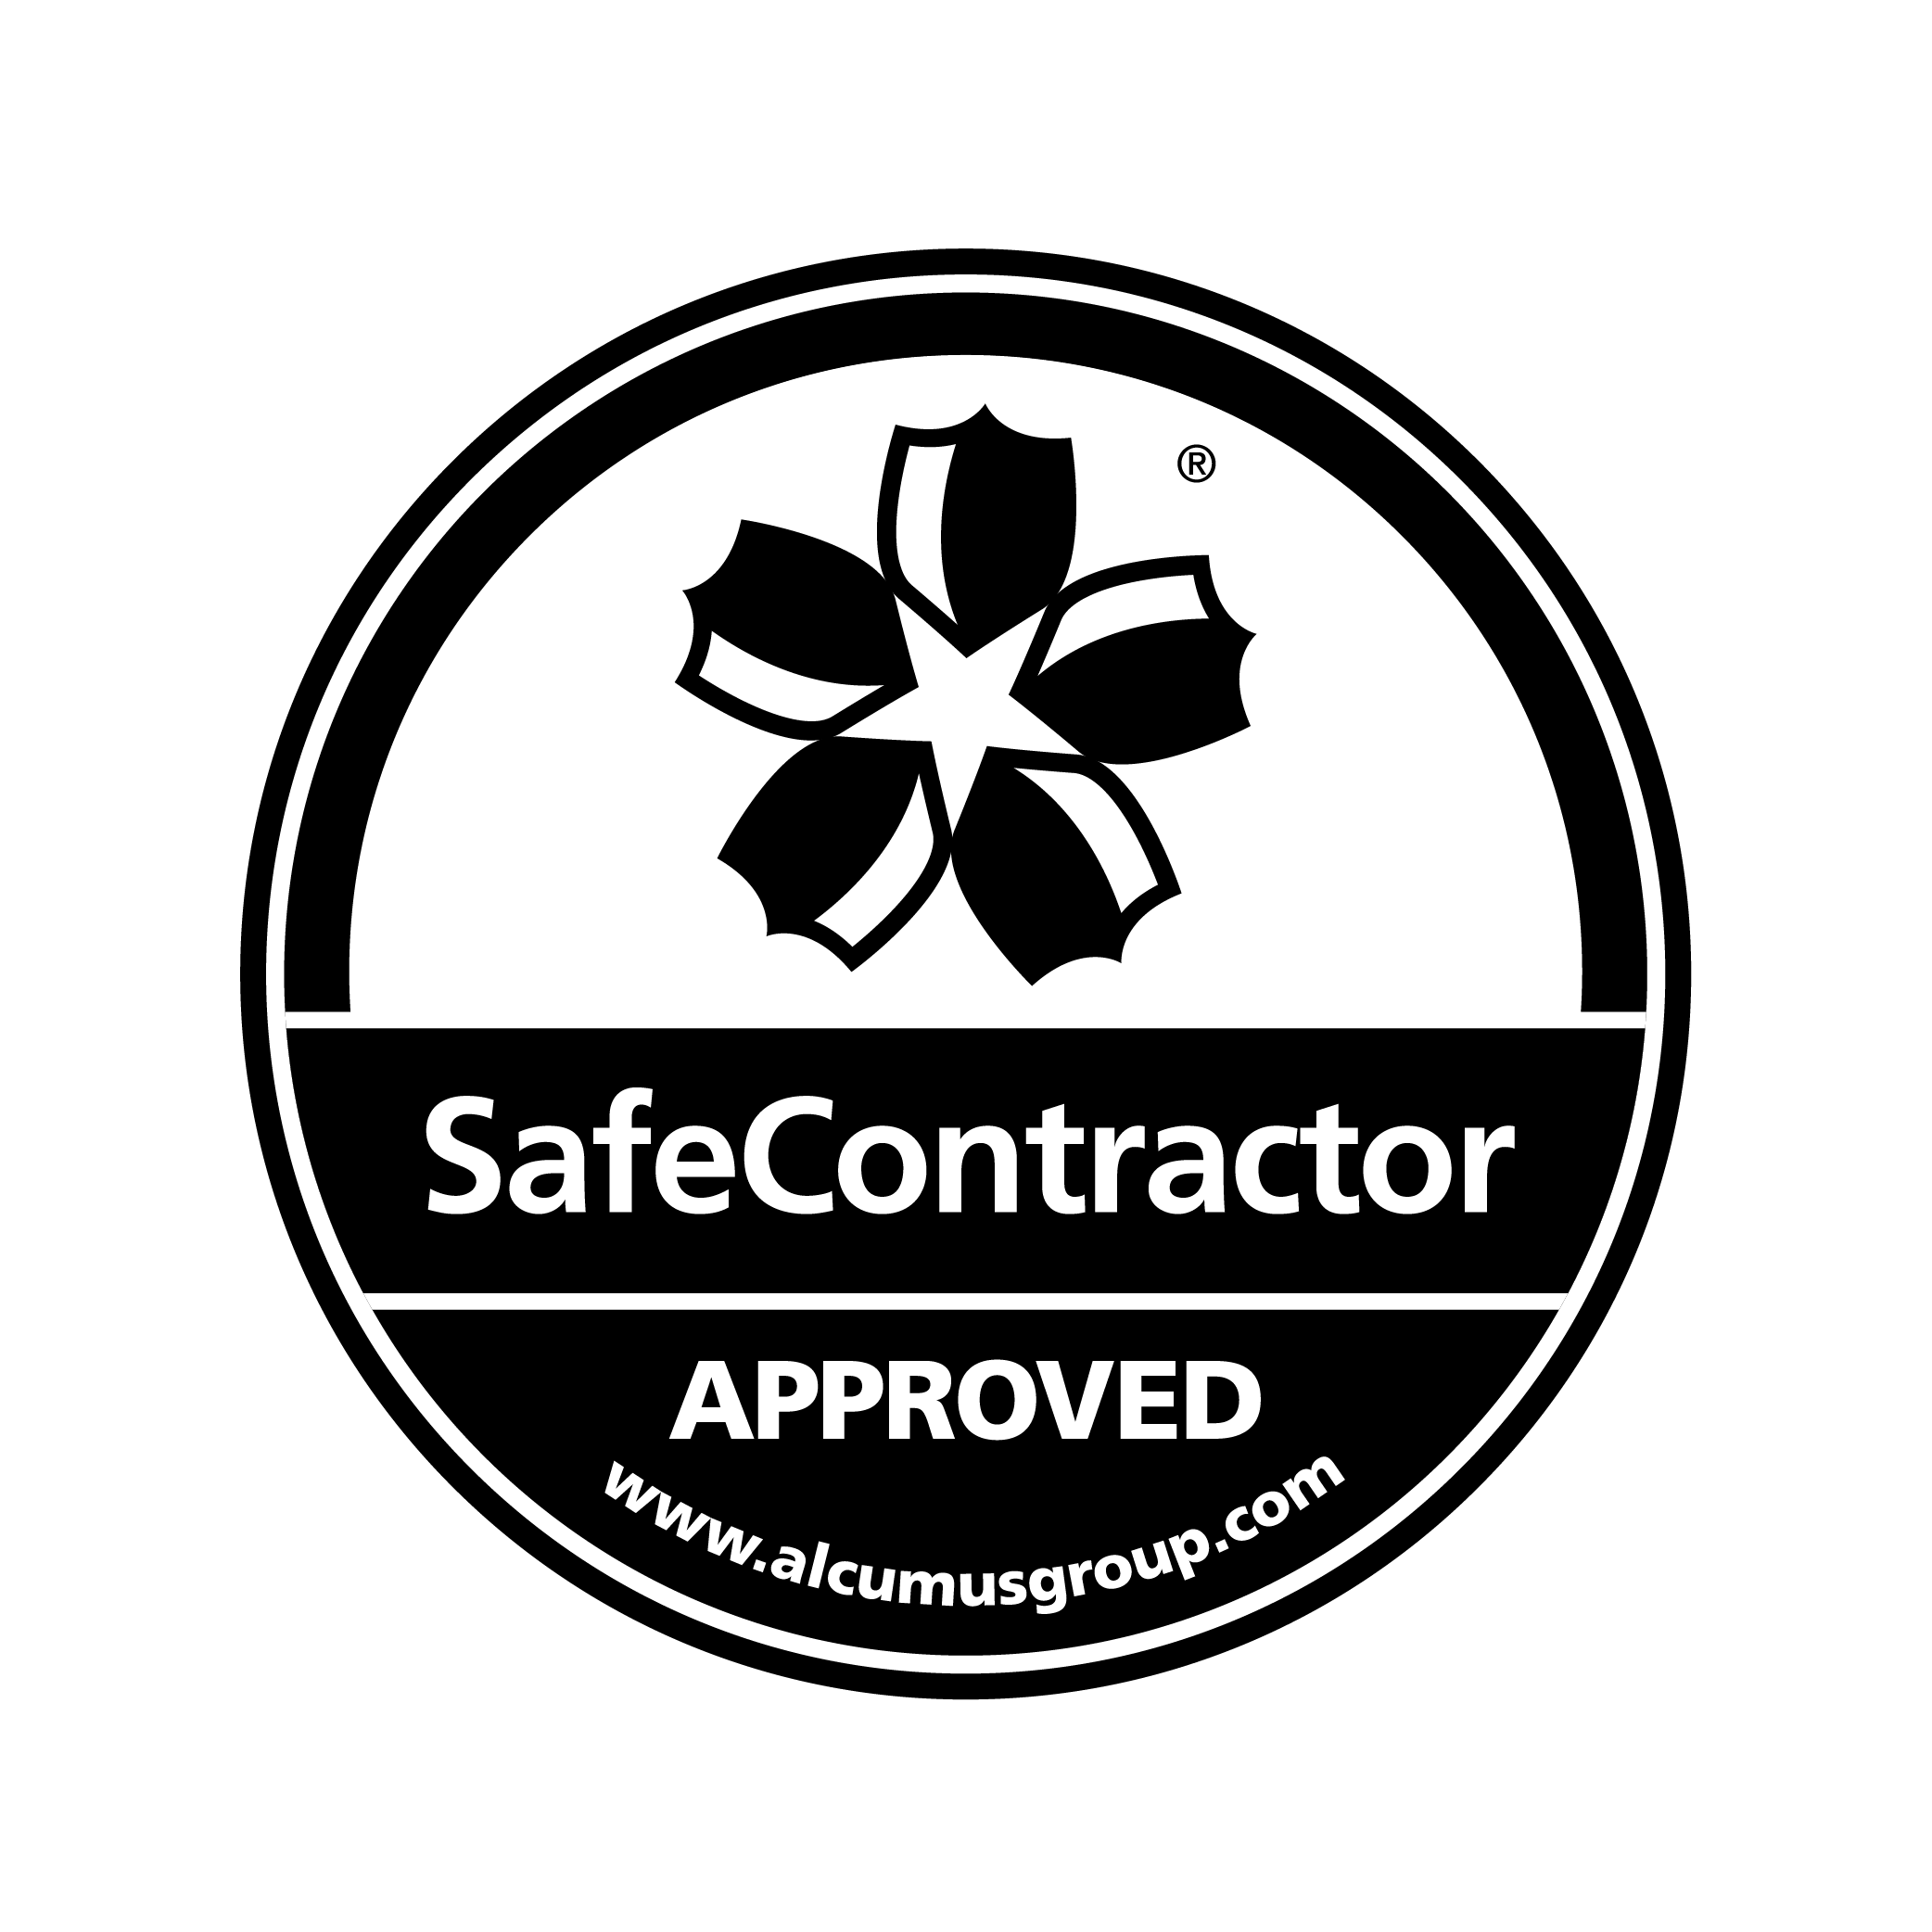 Safe Contractor Accredited Member   Our health and safety policies have been assessed and approved by SafeContractor.